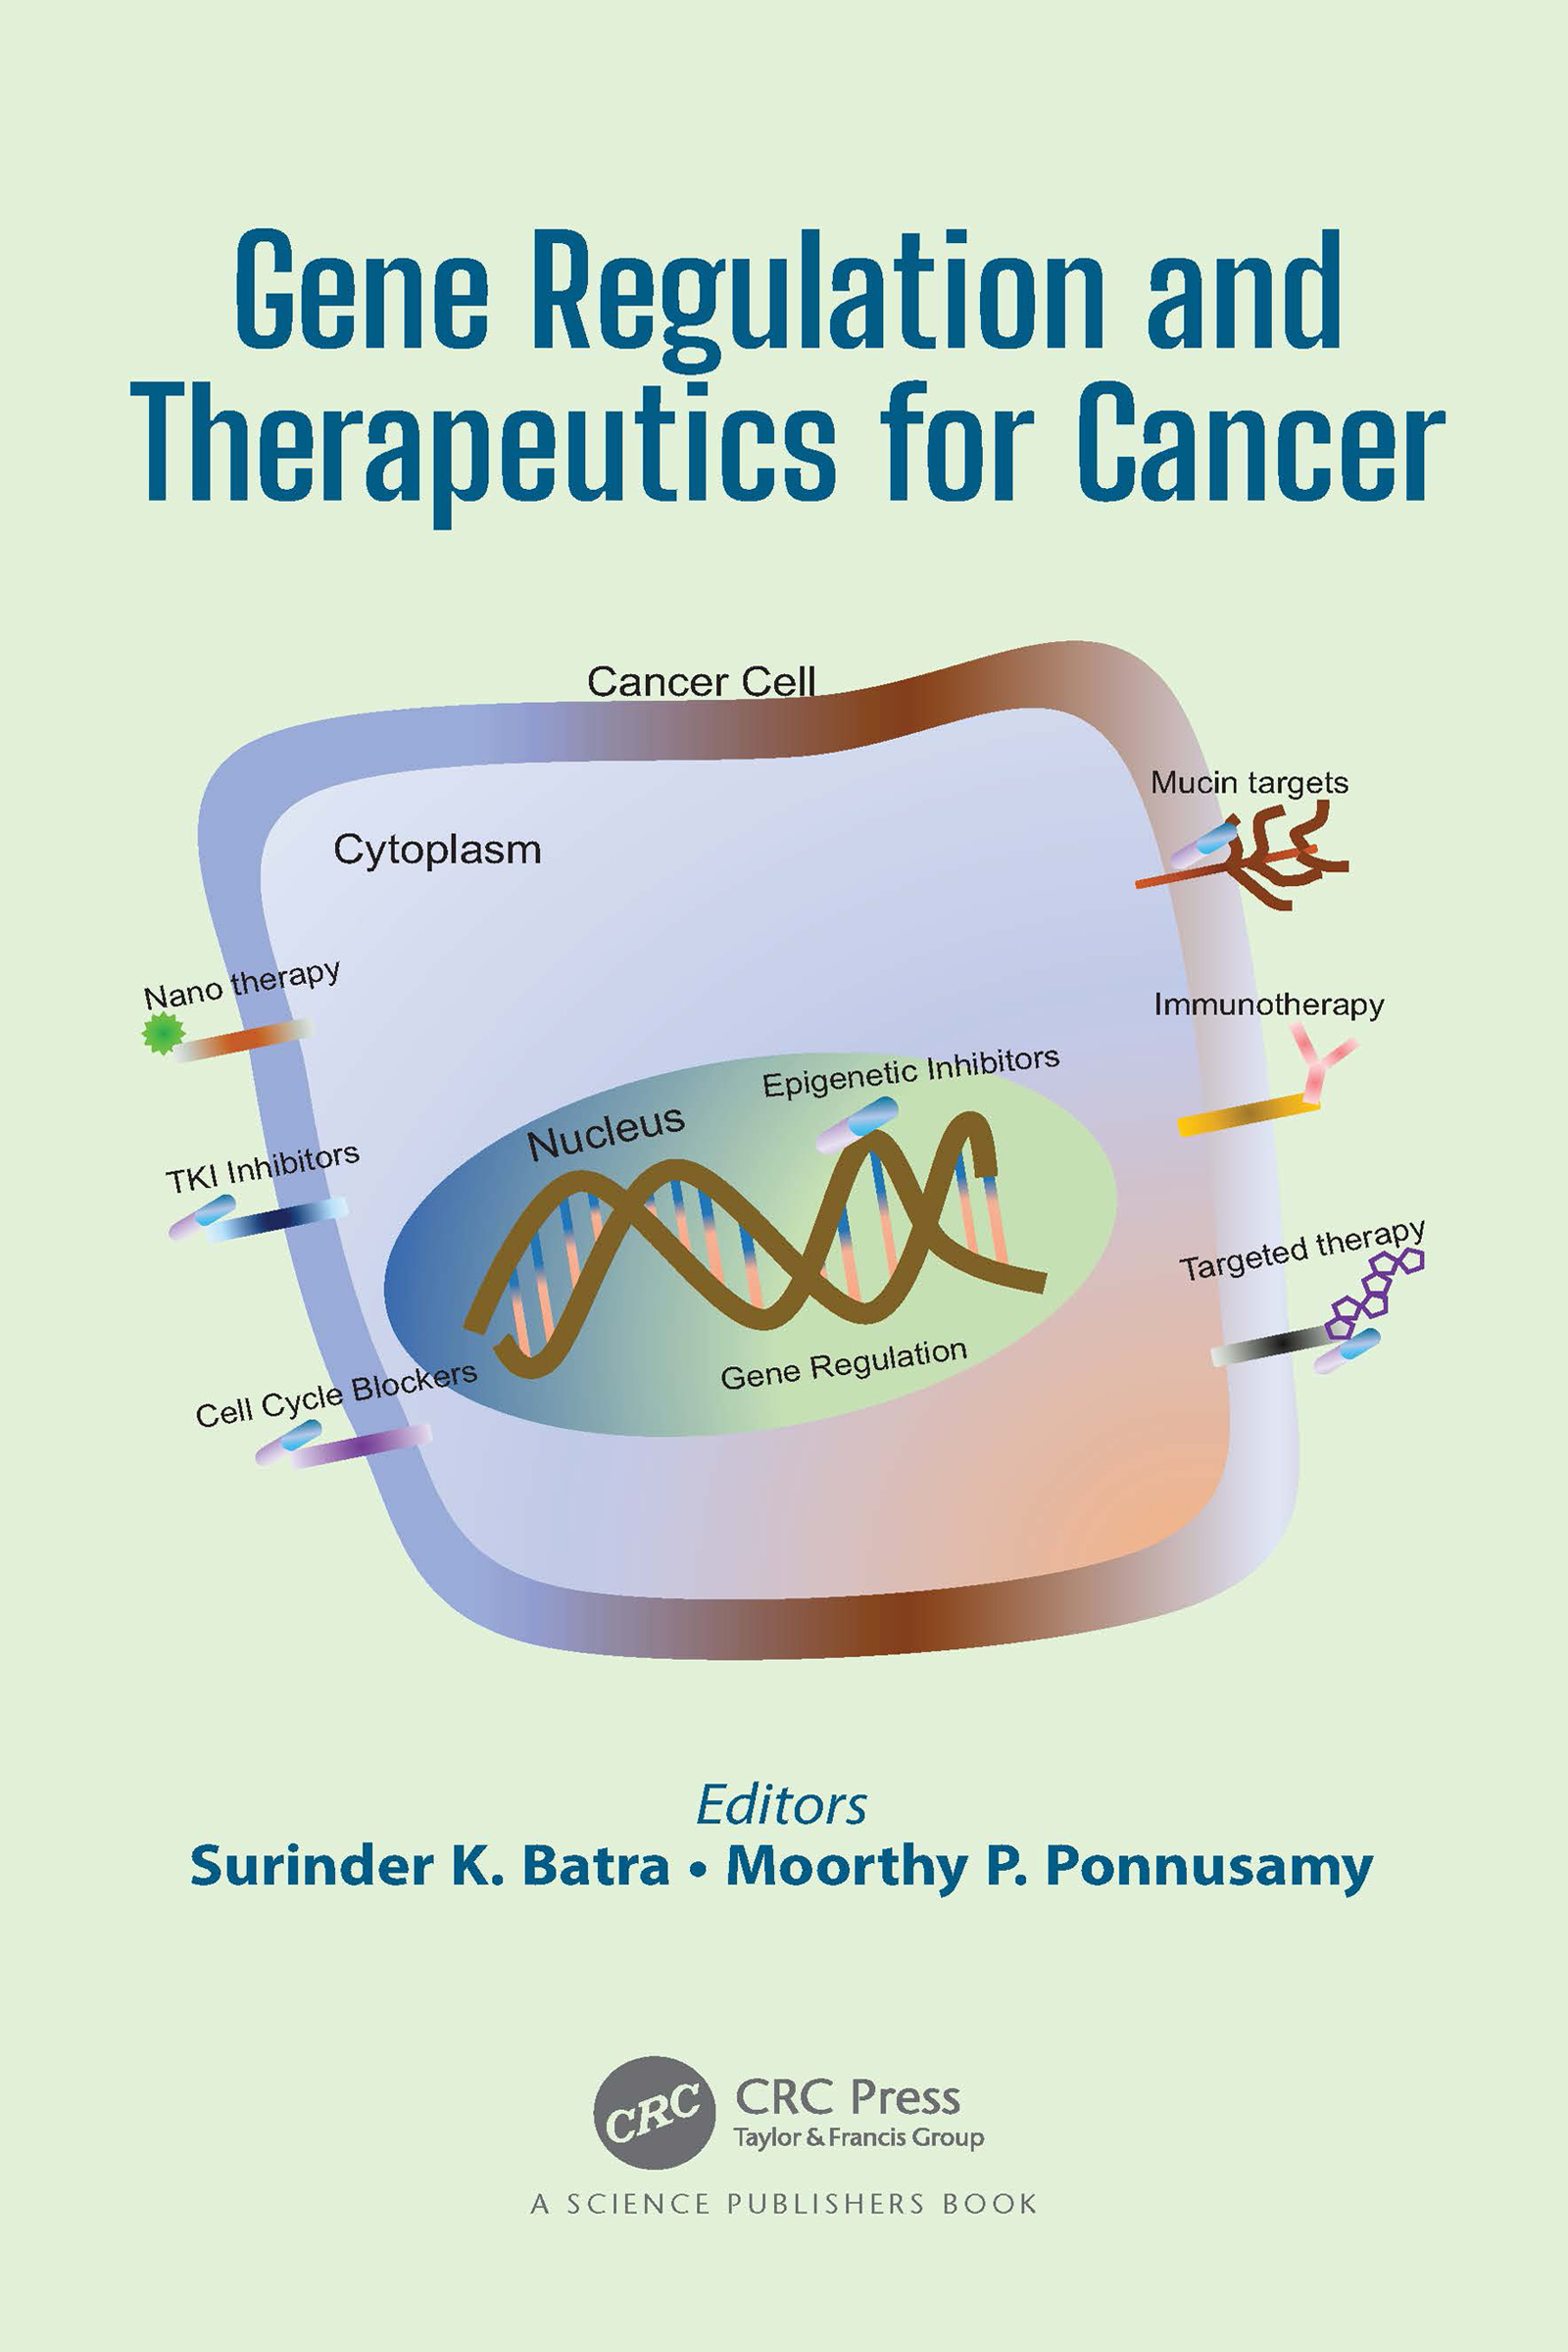 Gene Regulation and Therapeutics for Cancer